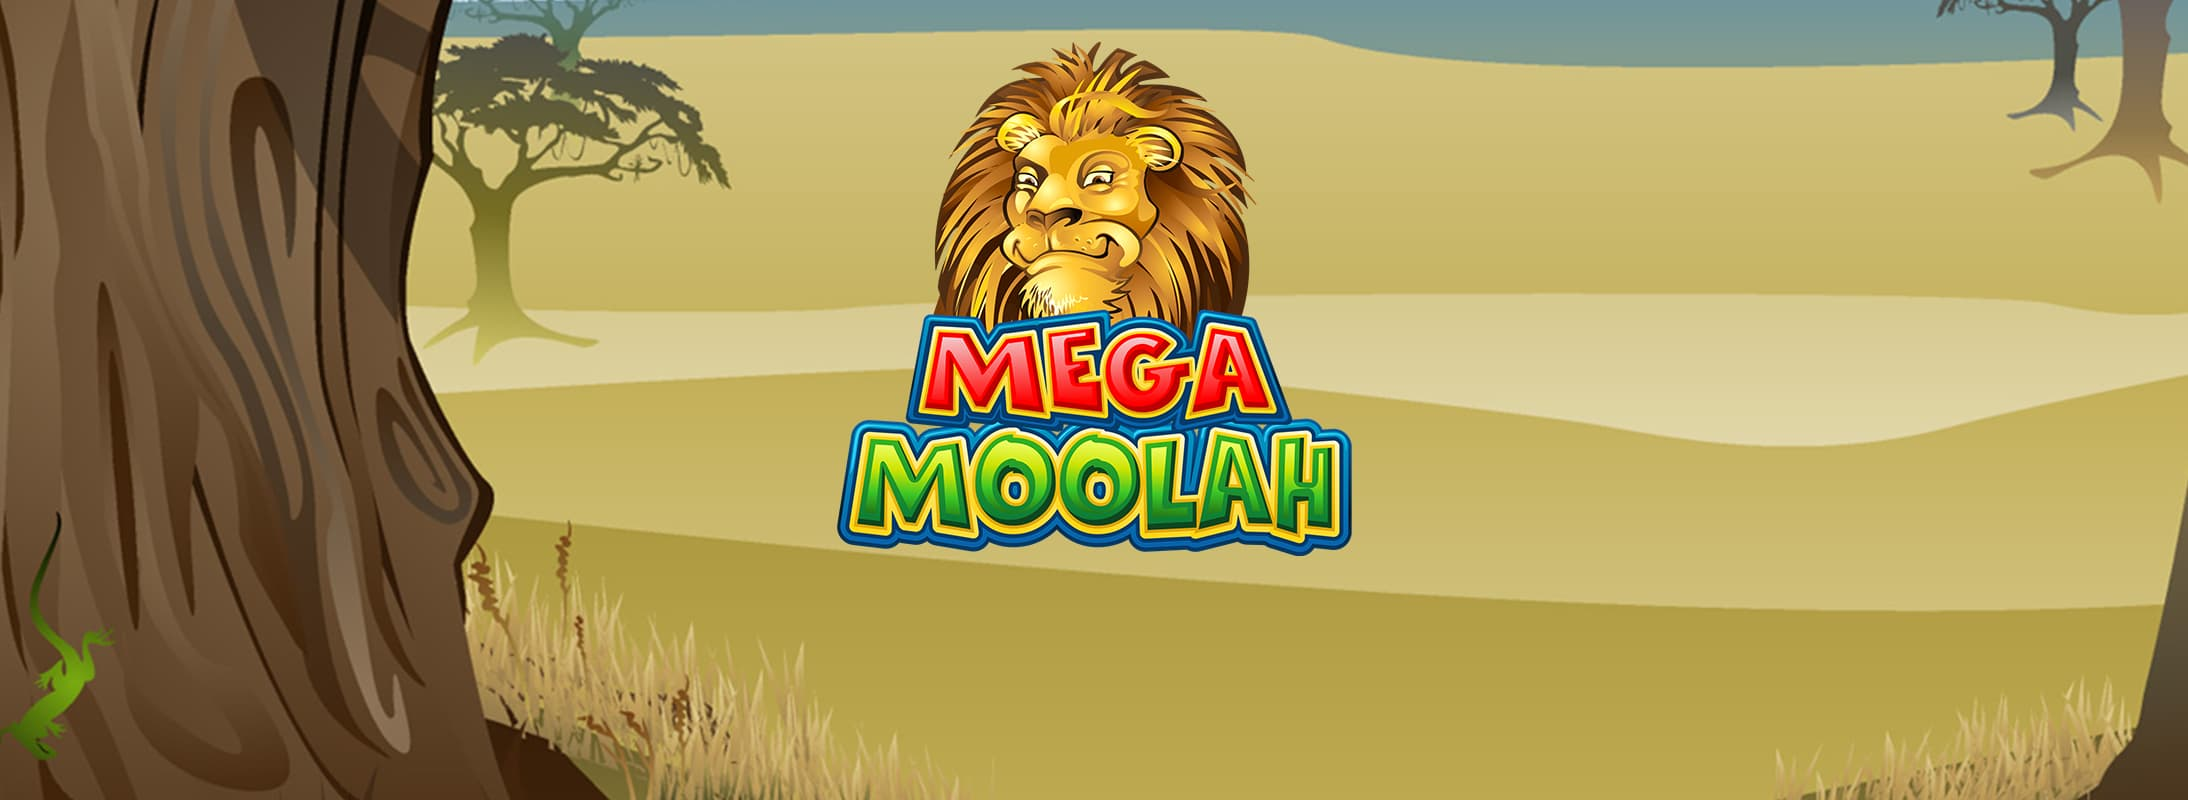 Mega Moolah Changes The Life Of A Canadian Player With A C$20 Million Win